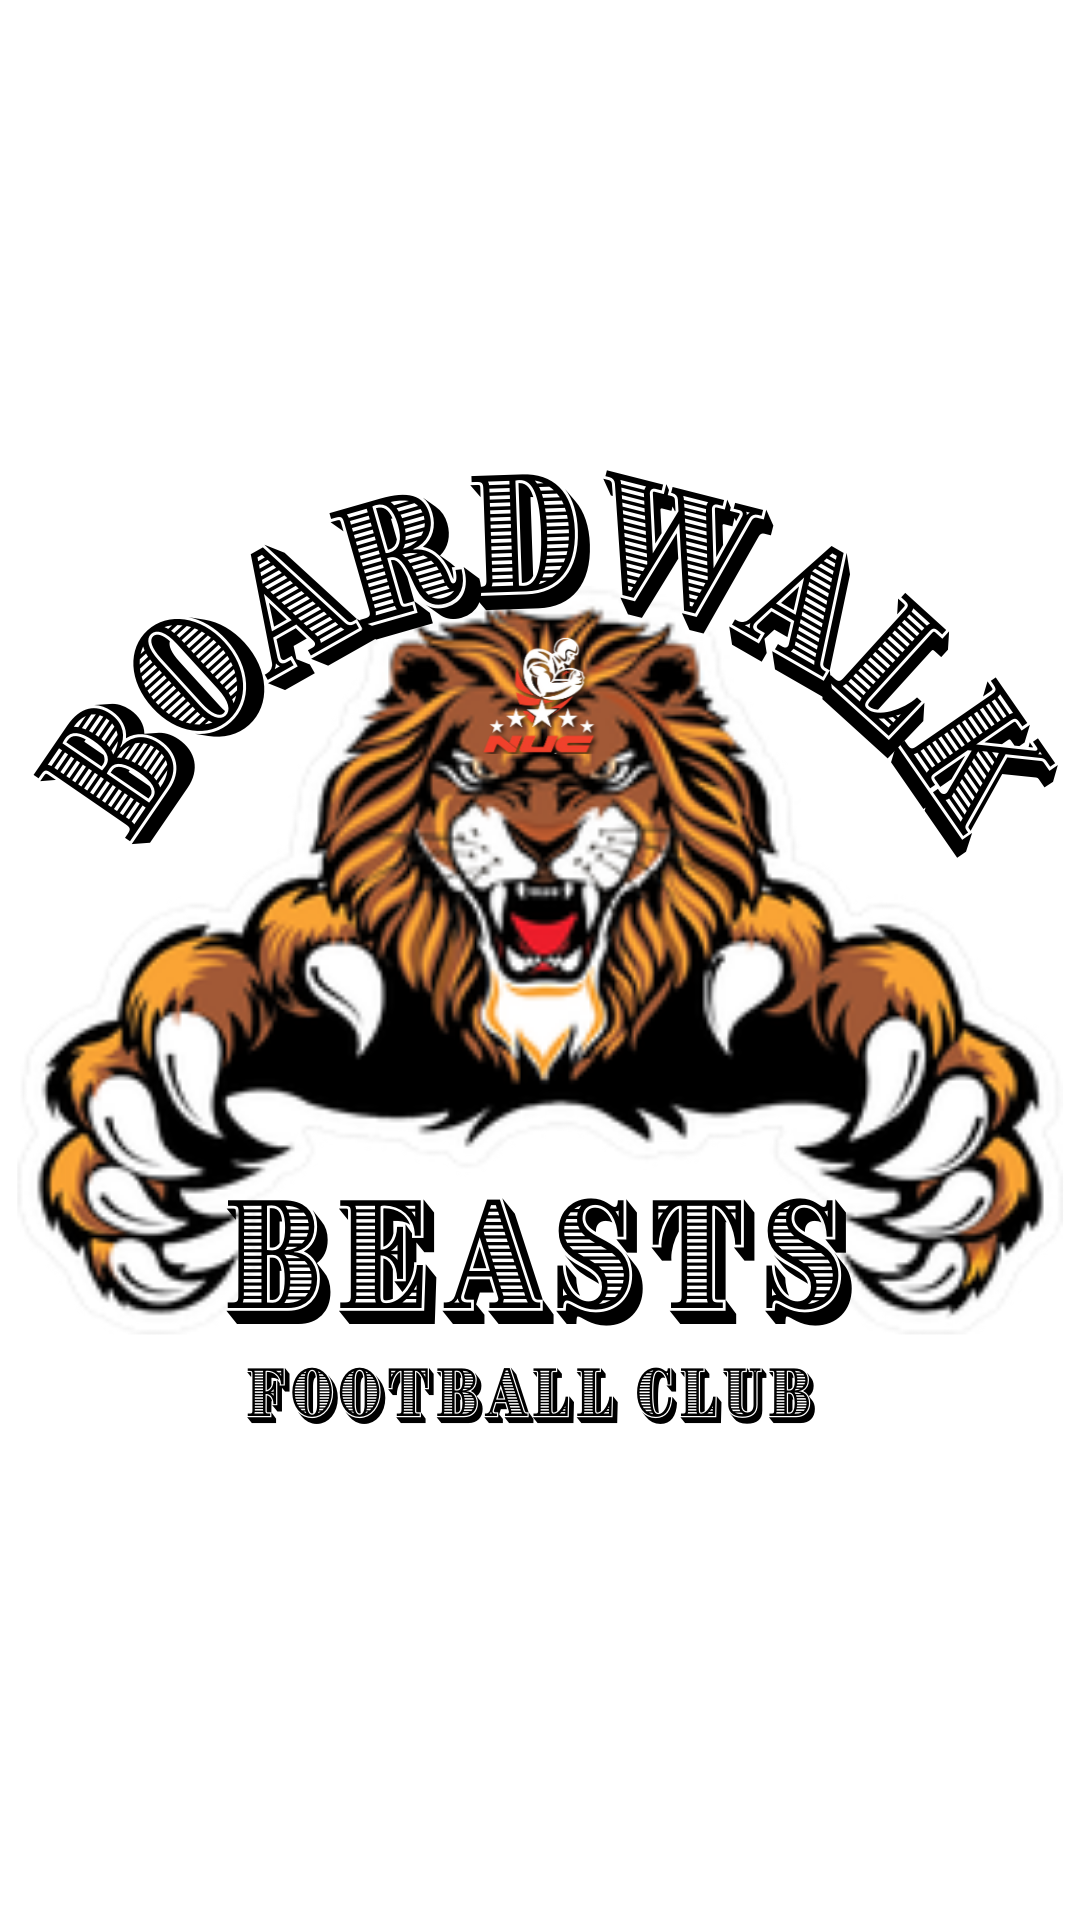 Boardwalk Beasts Uniform and Gear For Team Members for 7v7 Football Club